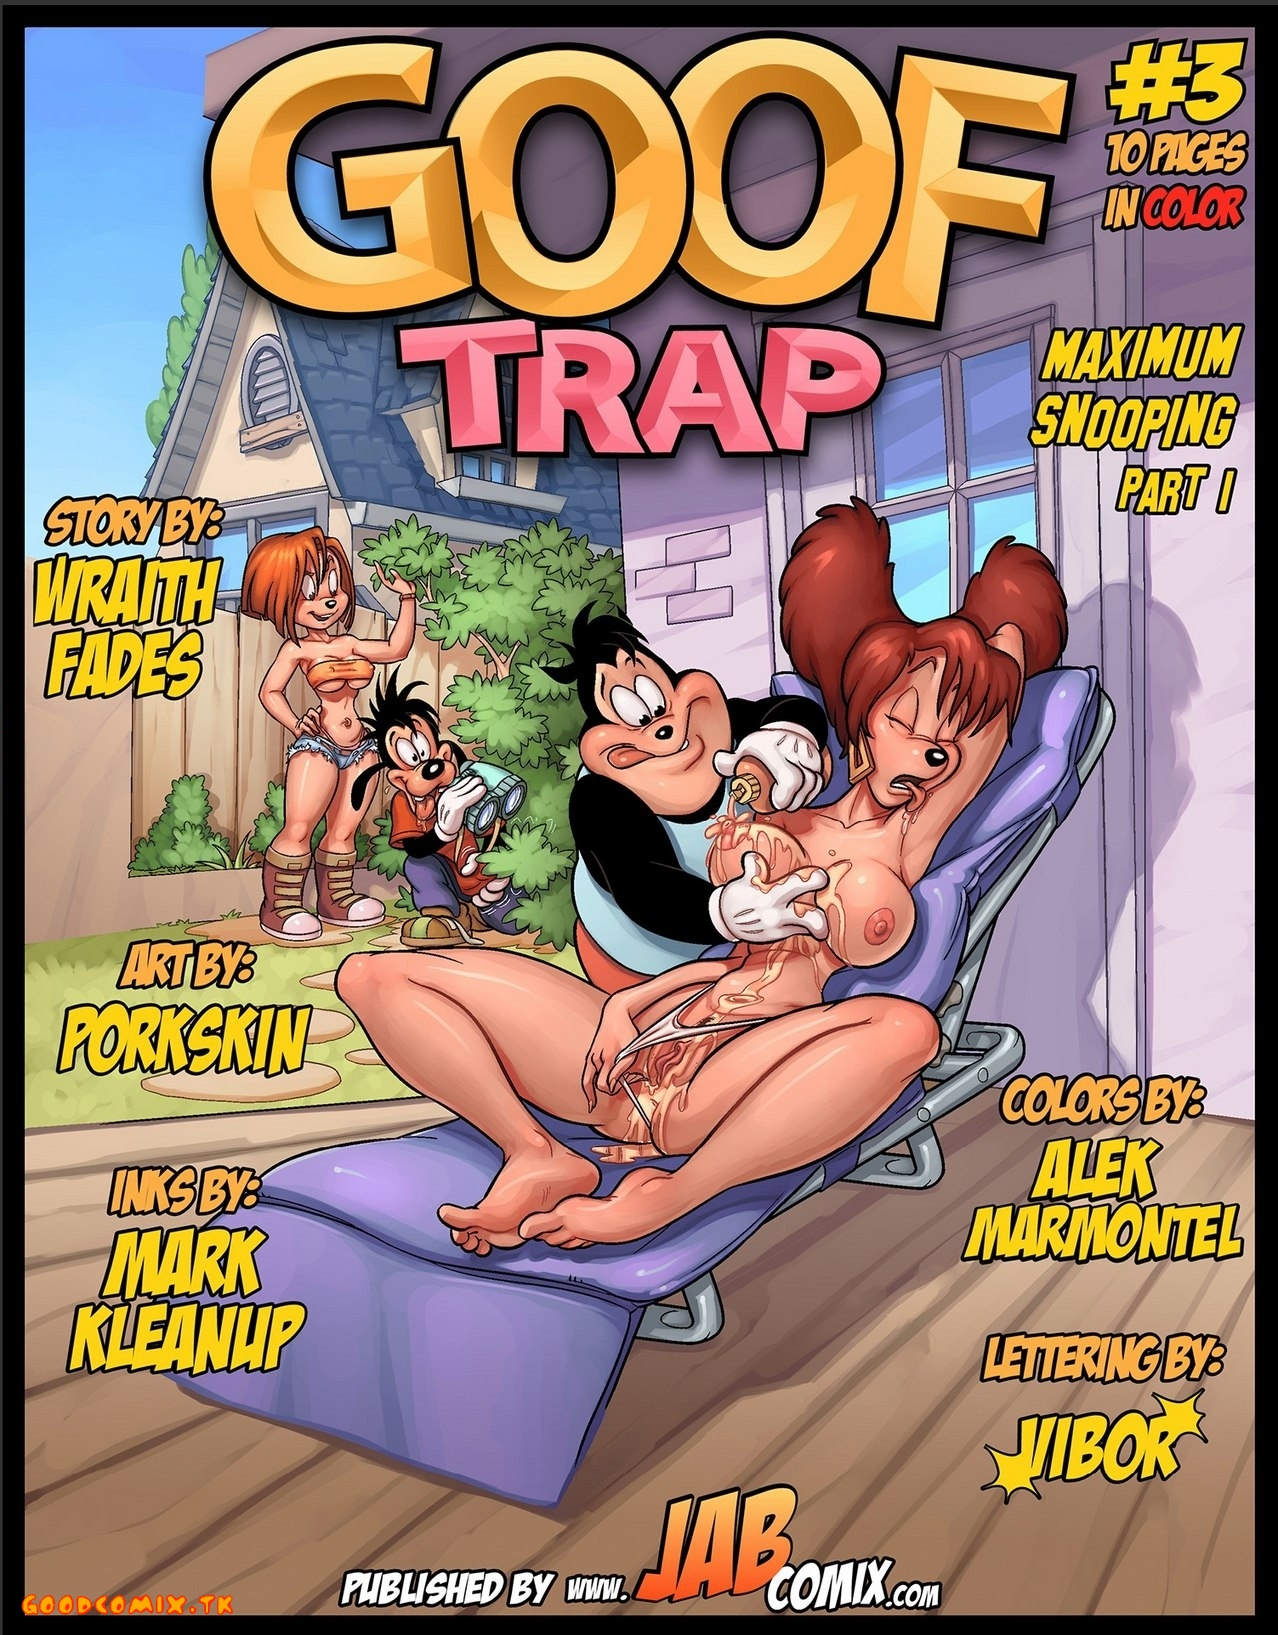 Goodcomix Goof Troop - [JabComix] - Goof Trap 3 - Maximum Snooping